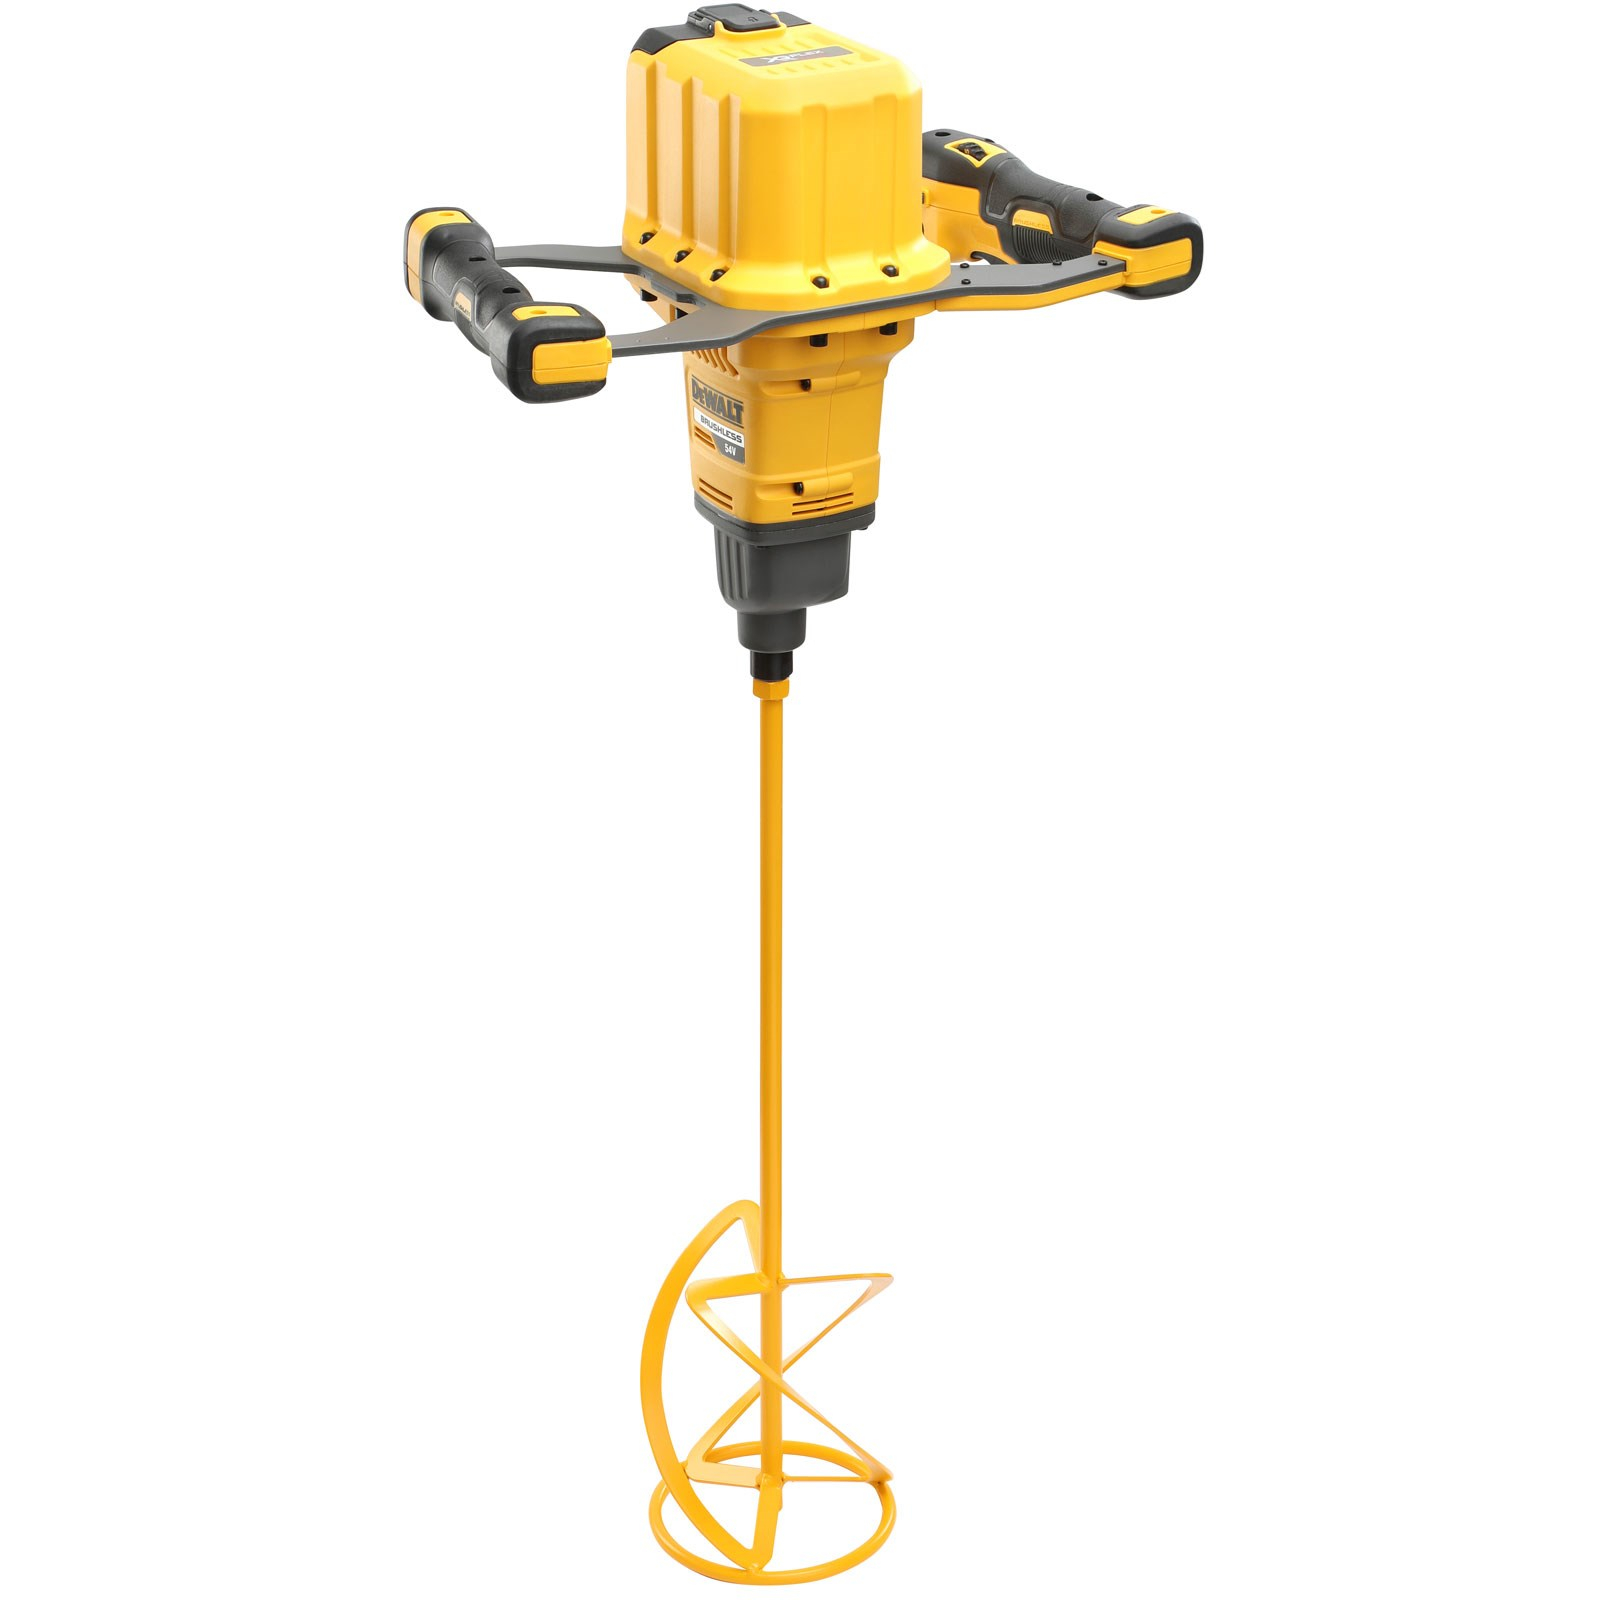 Dewalt 54v Brushless Paddle Mixer c/w 2 x 9.0Ah Batts